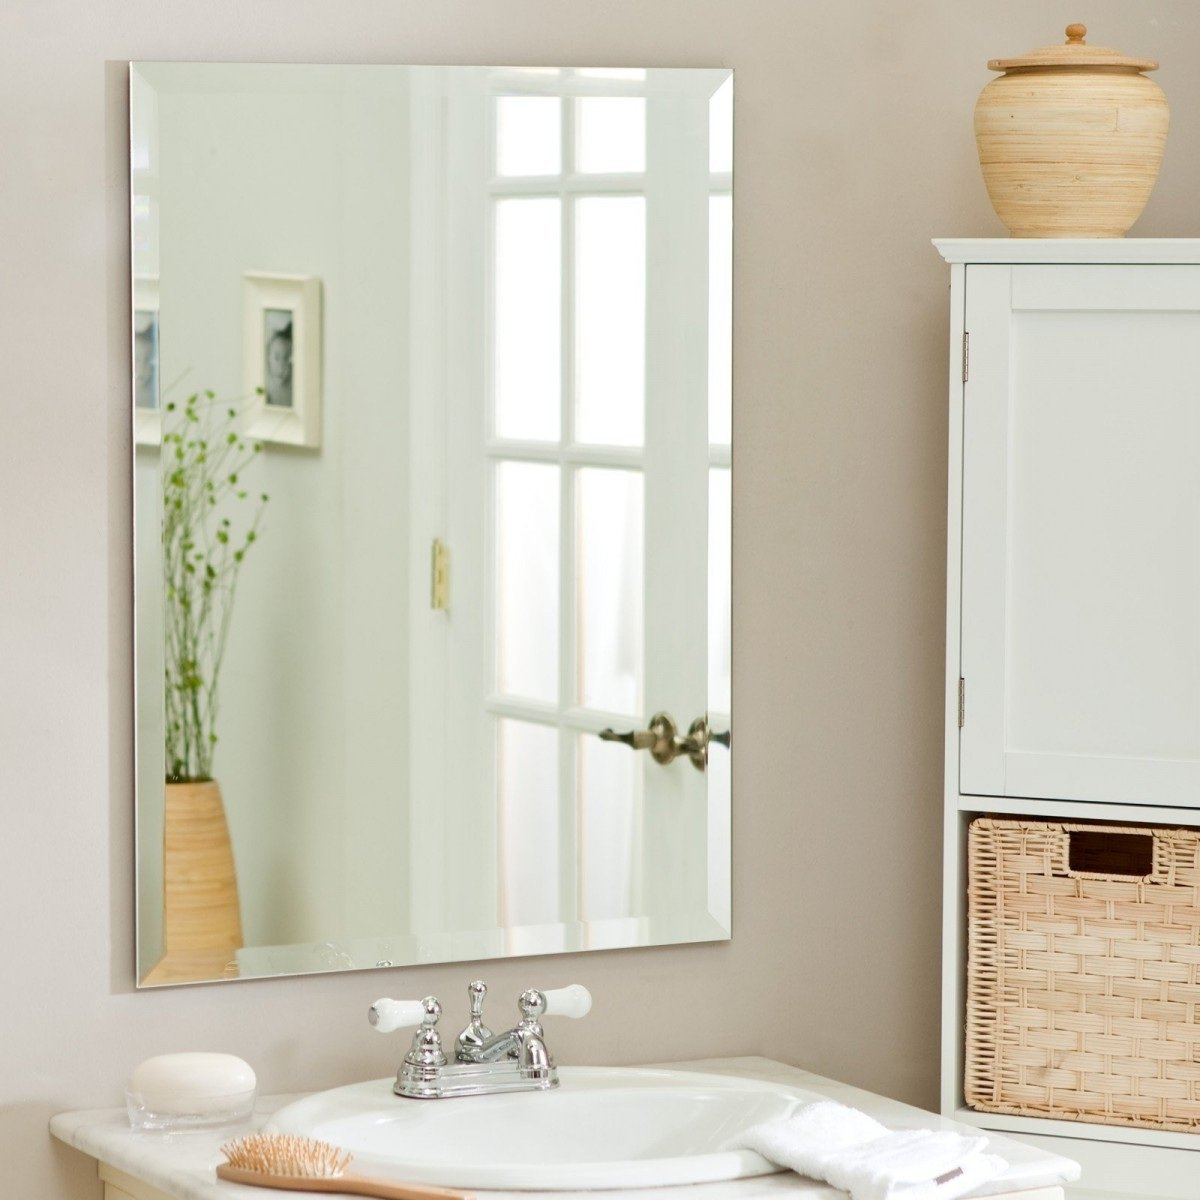 Mirrors Store: Buy Mirrors Online at Best Prices in India | Browse ...